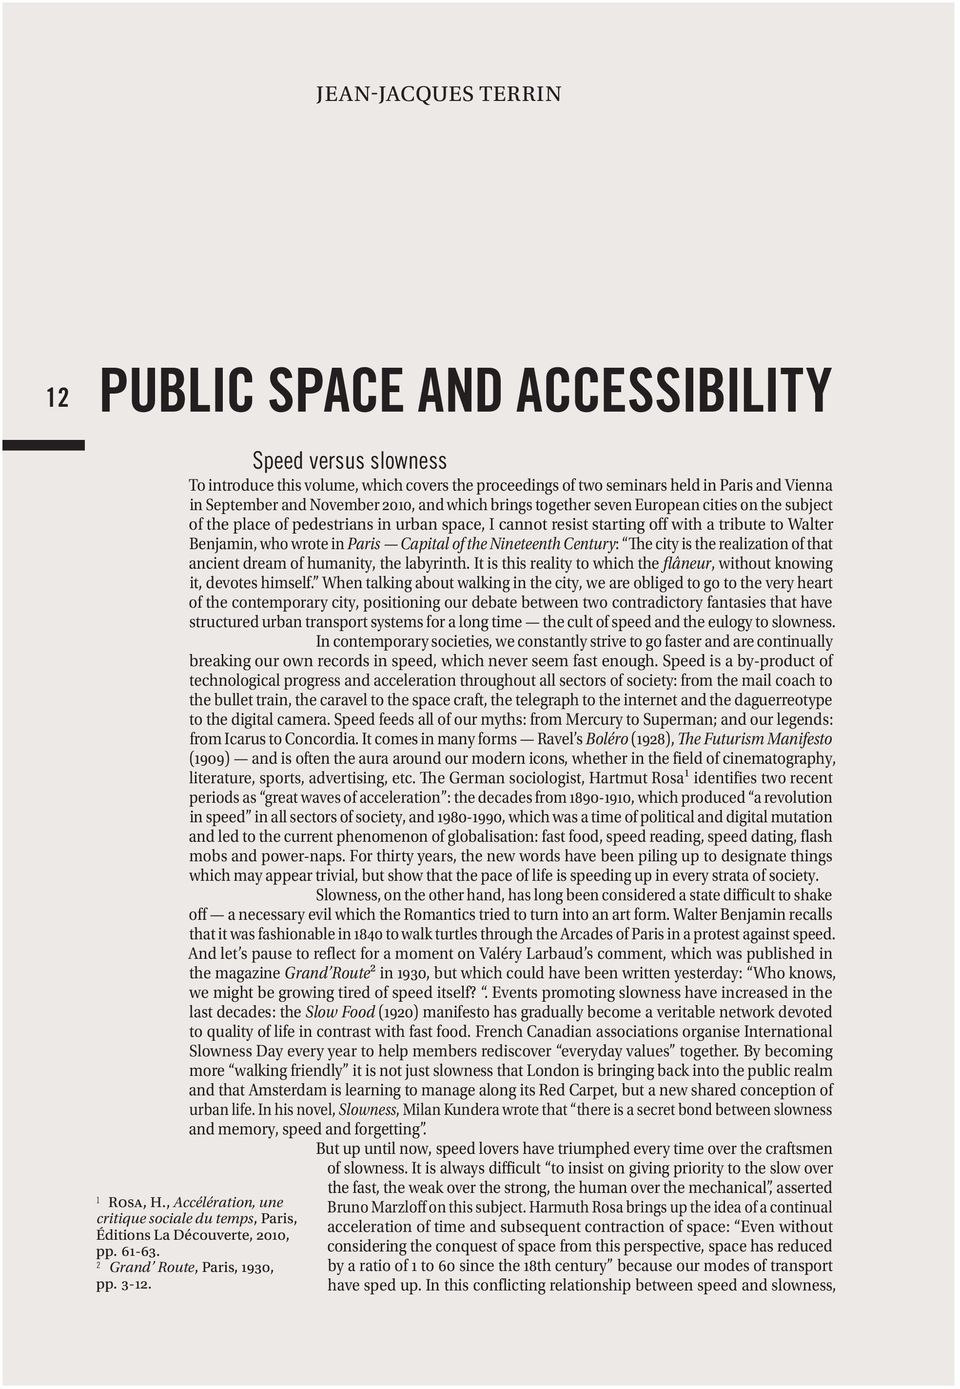 proceedings of two seminars held in Paris and Vienna in September and November 2010, and which brings together seven European cities on the subject of the place of pedestrians in urban space, I